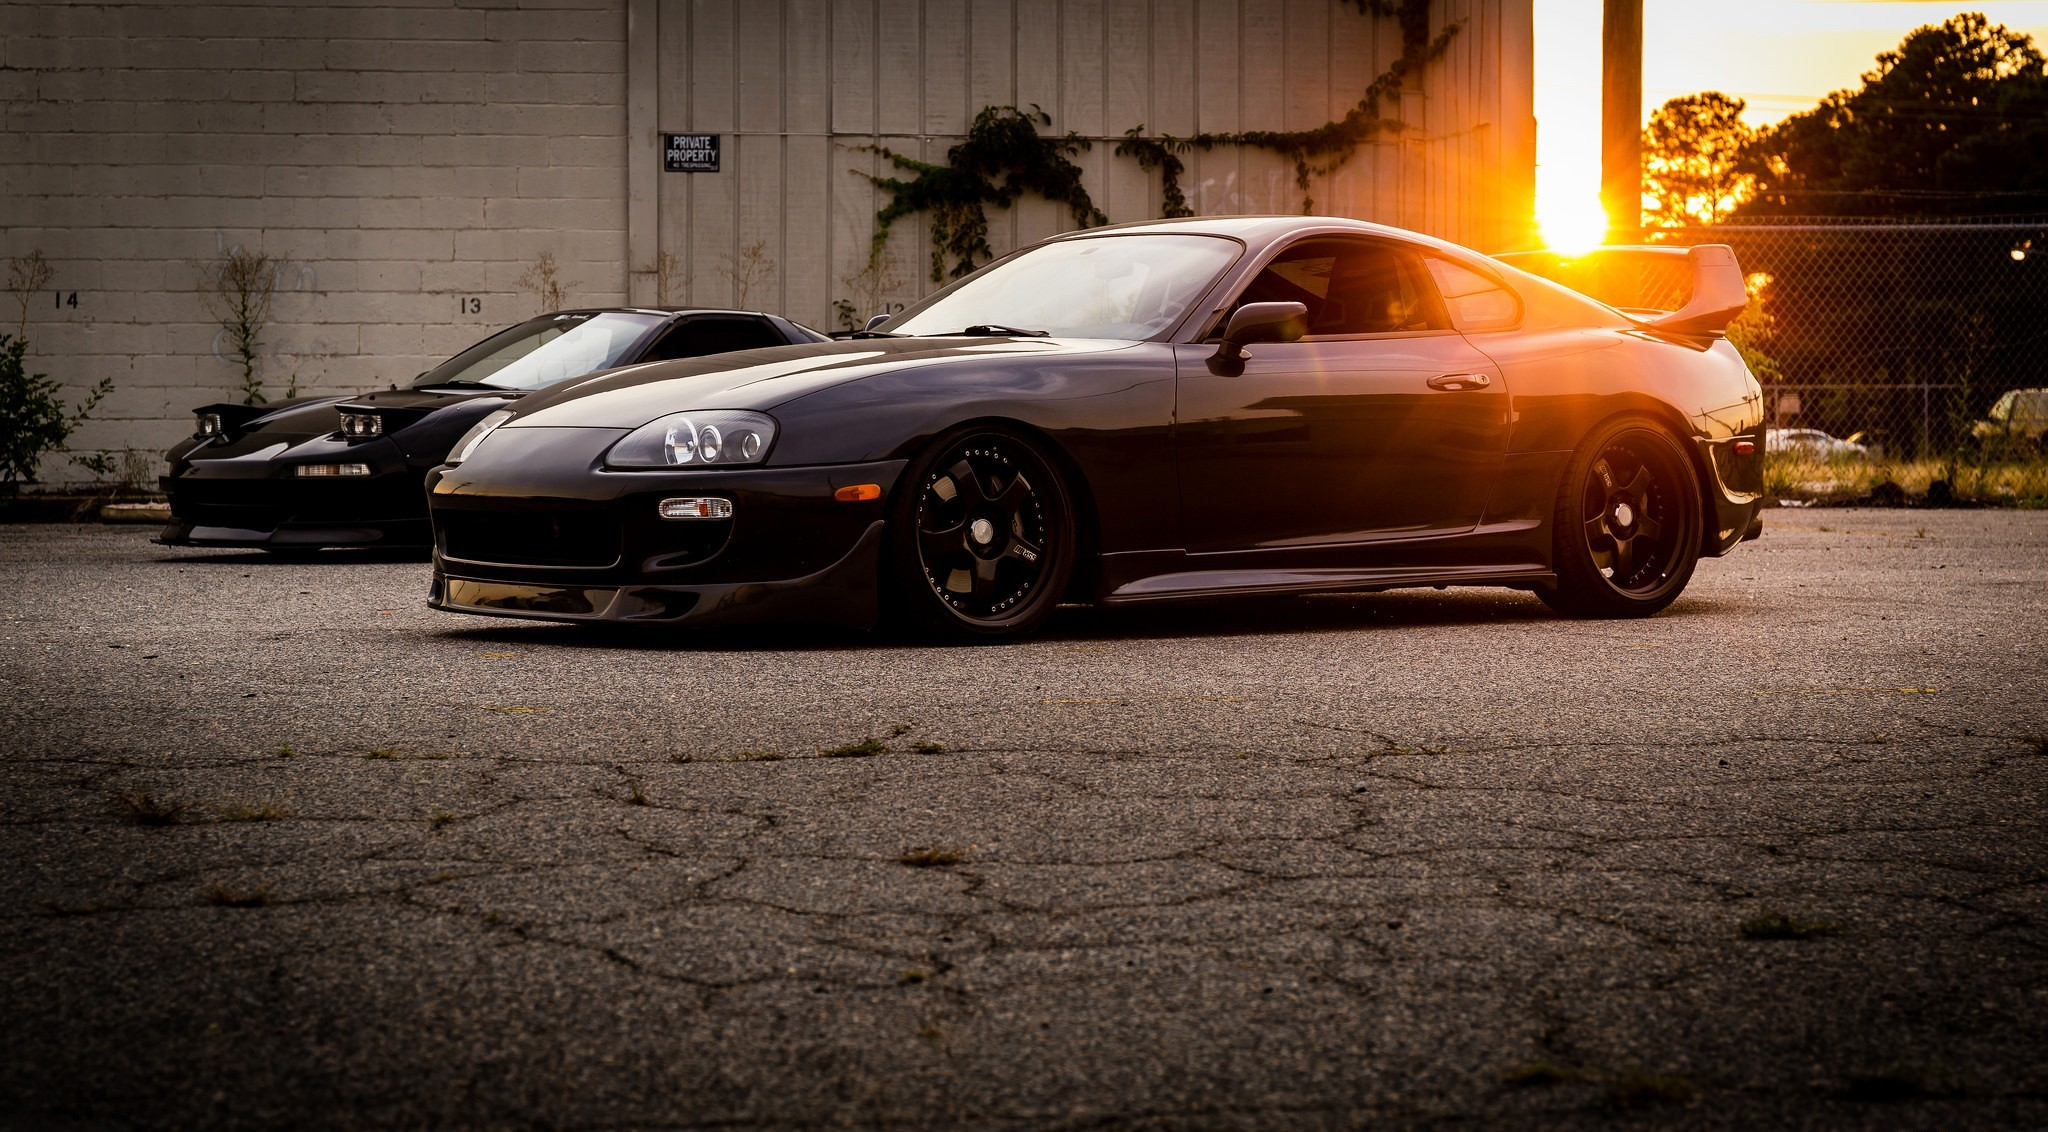 Jdm Car Wallpaper 1920x1080 Toyota Supra Wallpapers Pictures Images